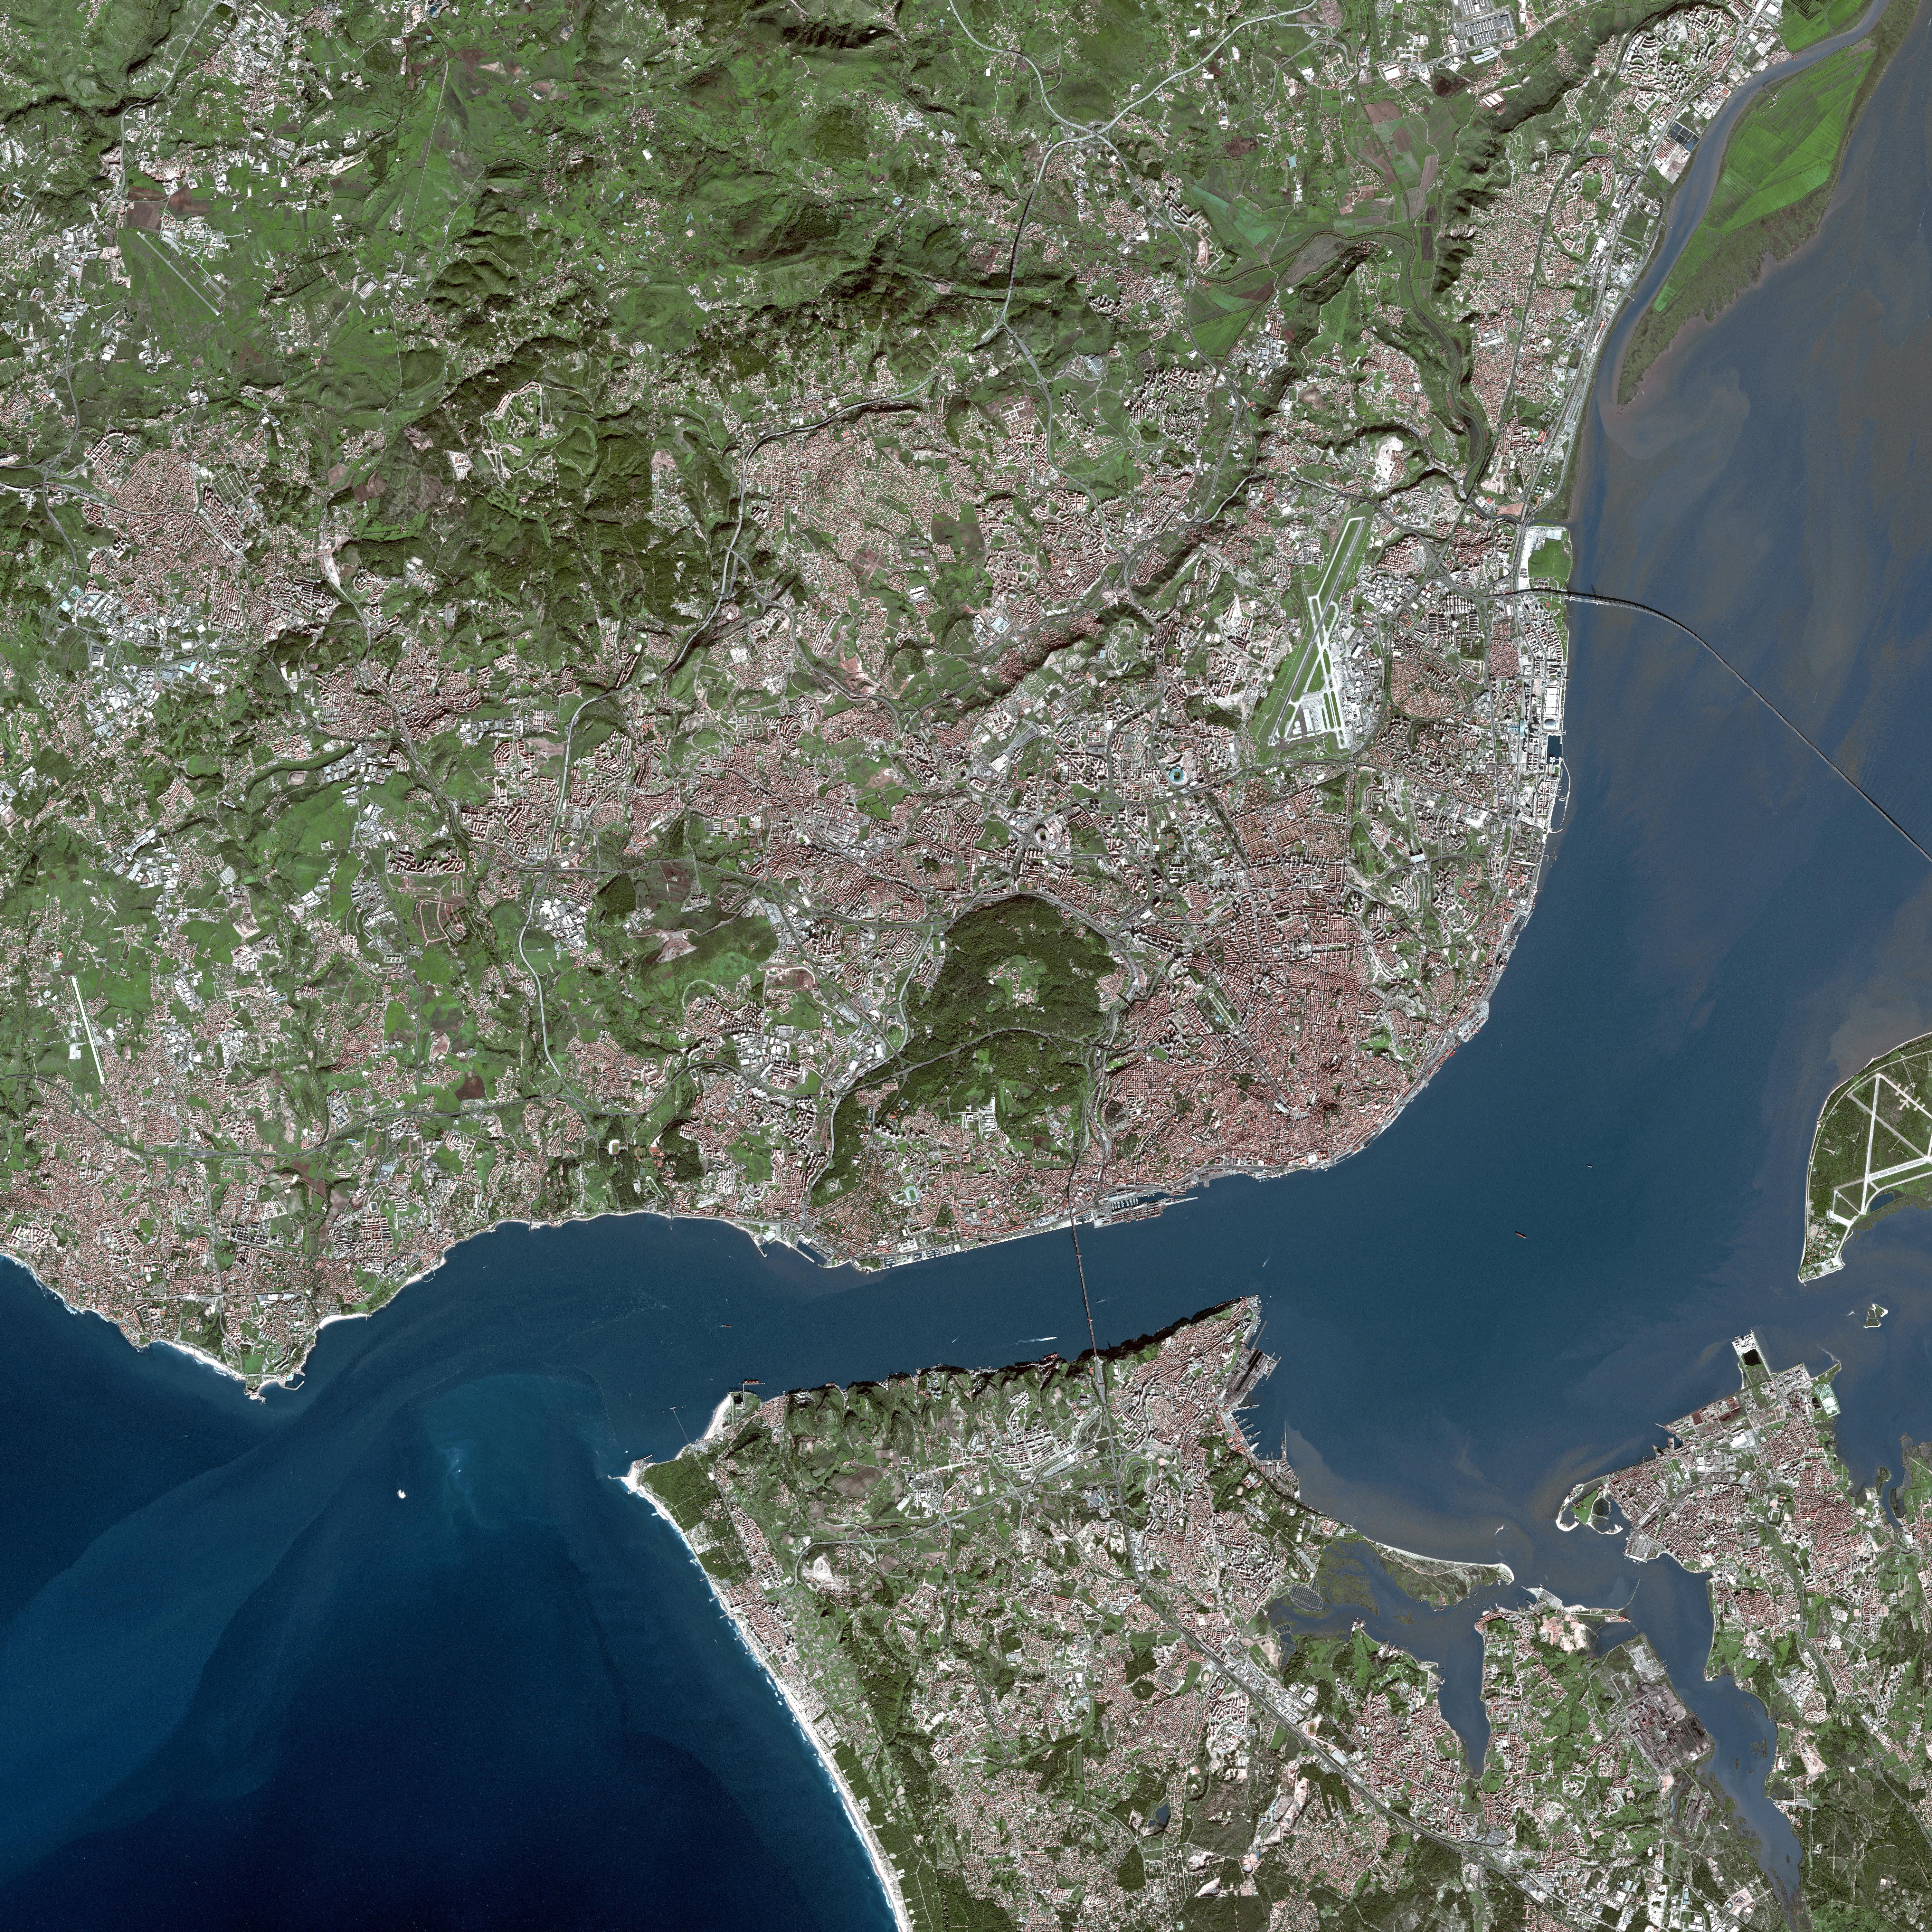 View of the Lisbon metropolitan area, with the Portuguese Riviera to the west of Lisbon and the Setúbal Peninsula south of the Tagus River.